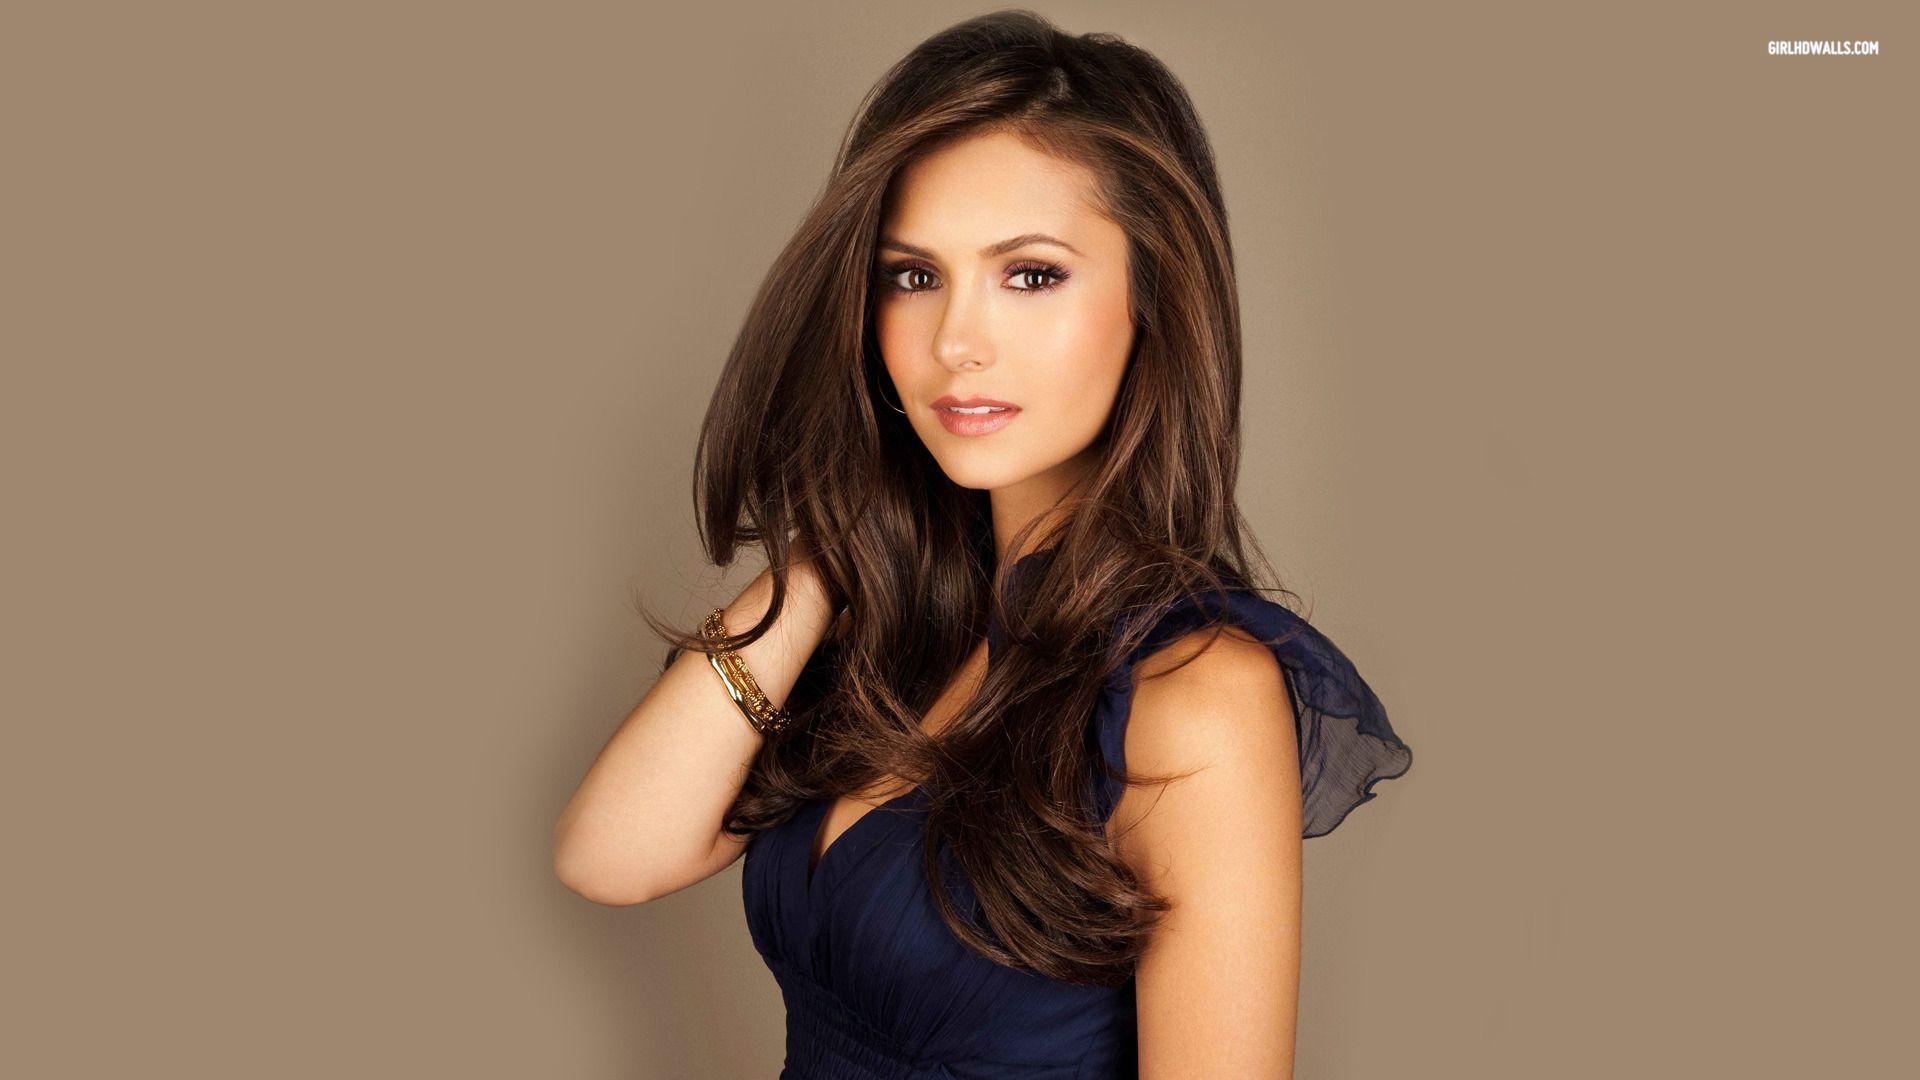 nina dobrev full hd - photo #15